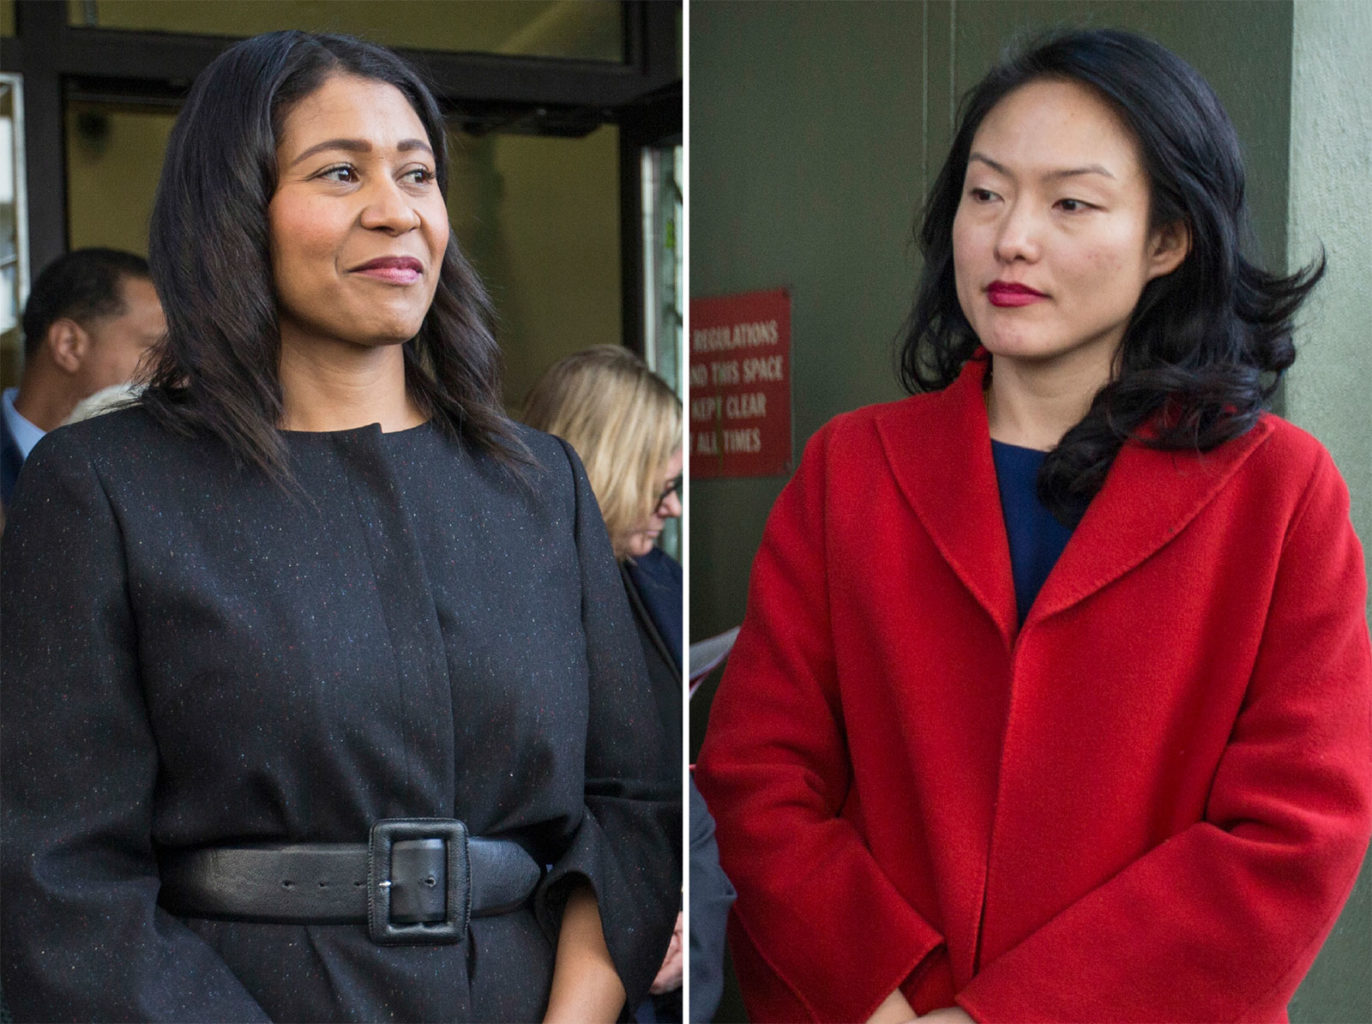 Acting Mayor London Breed, left, and Supervisor Jane Kim both accepted campaign contributions as high as $10,000 for races related to the Democratic County Central Committee. (Jessica Christian/S.F. Examiner)